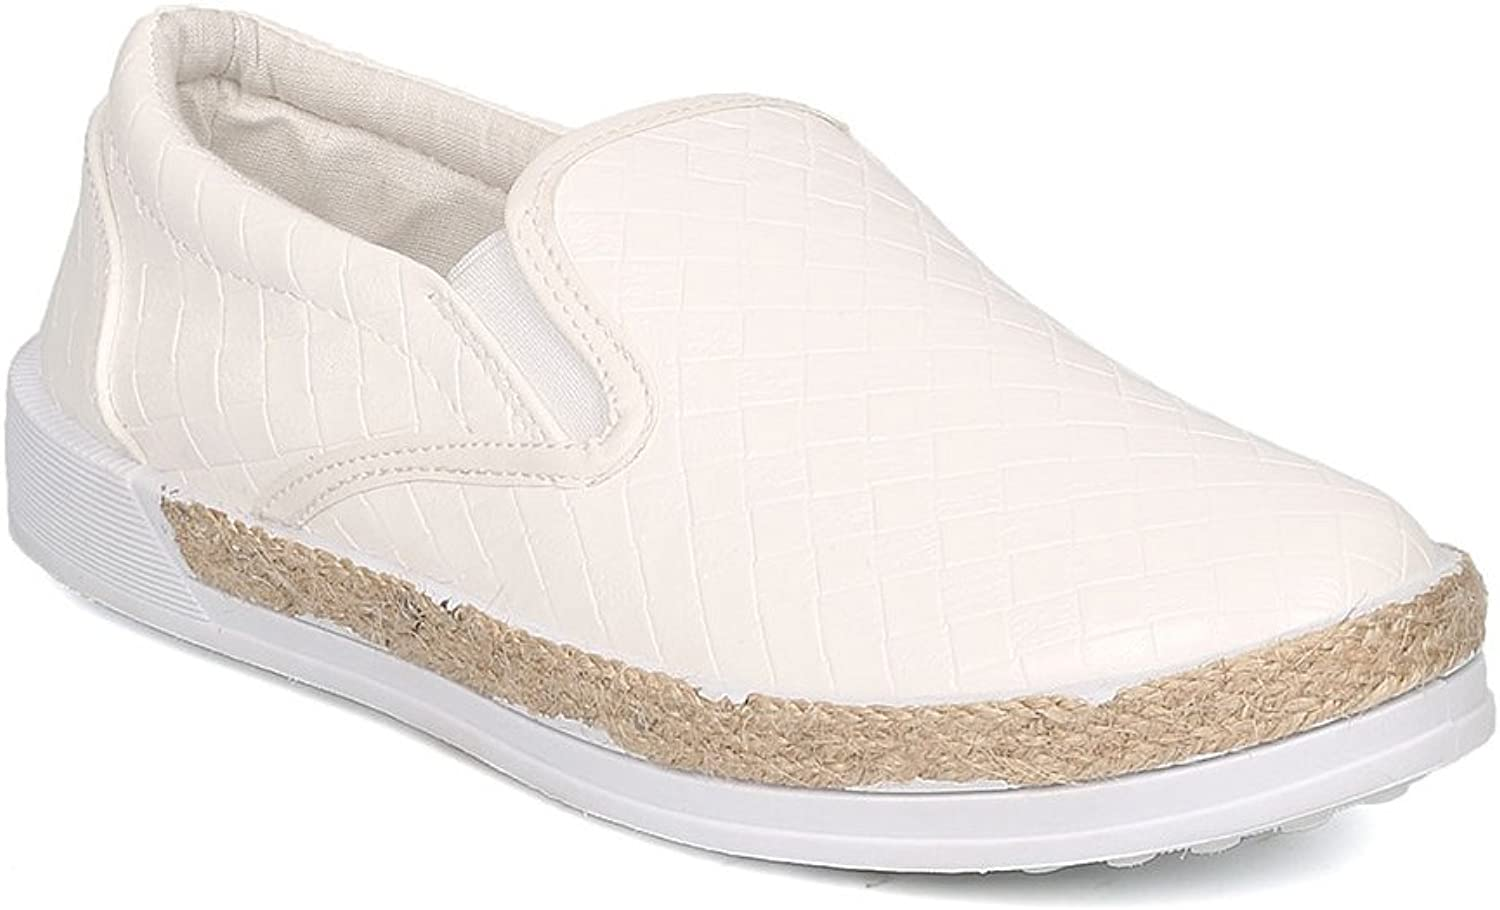 Qupid Women Leatherette Espadrille Slip On Sneaker GF72